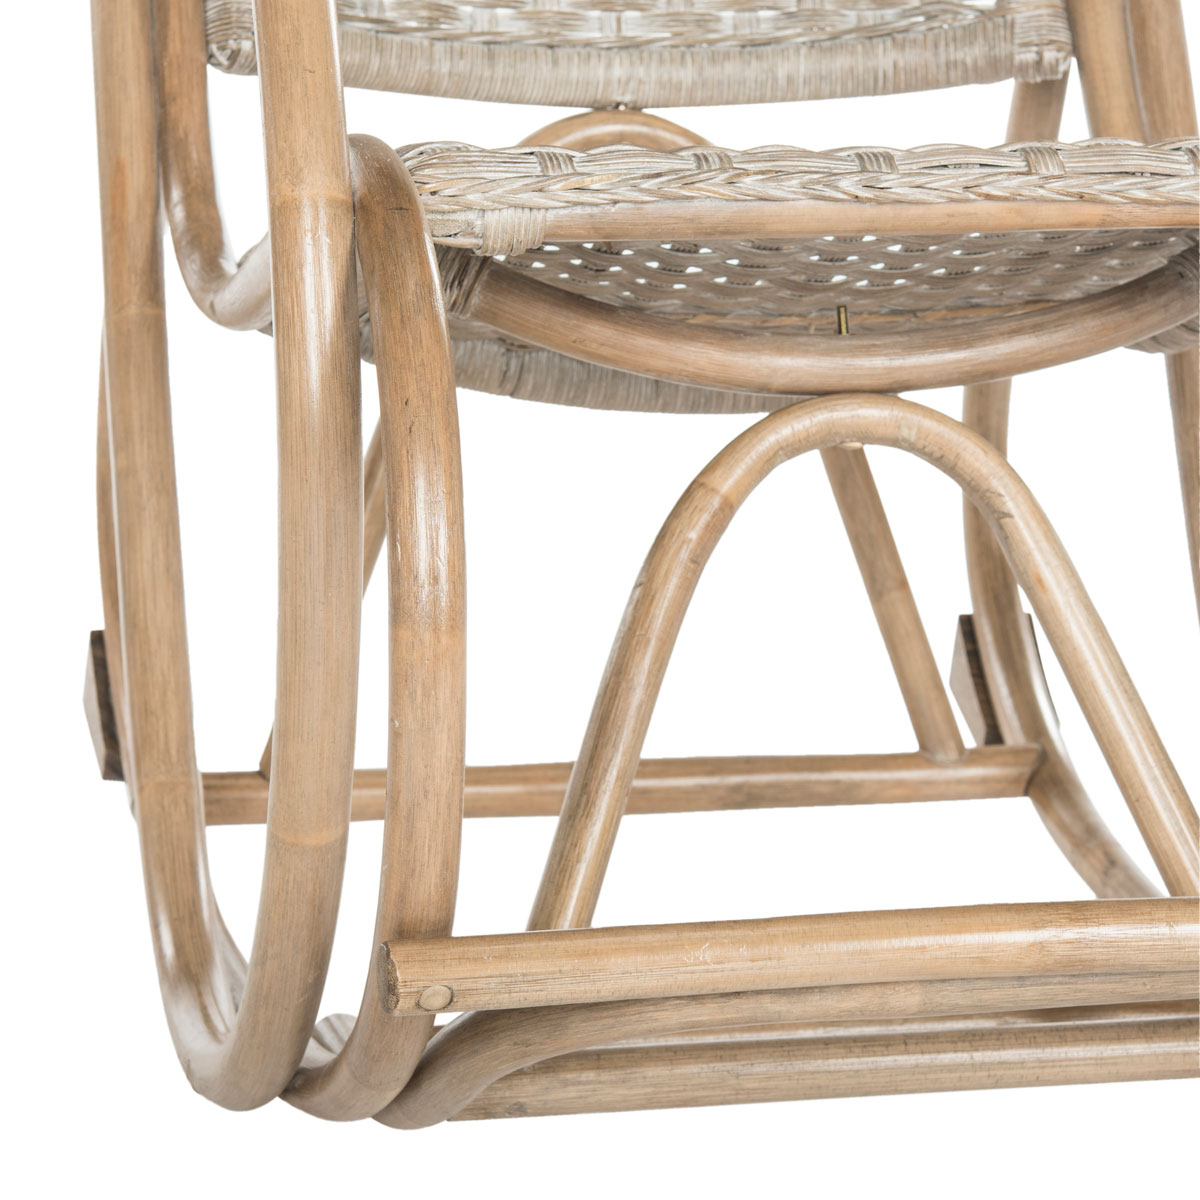 Sea8035a Rocking Chairs Furniture By Safavieh